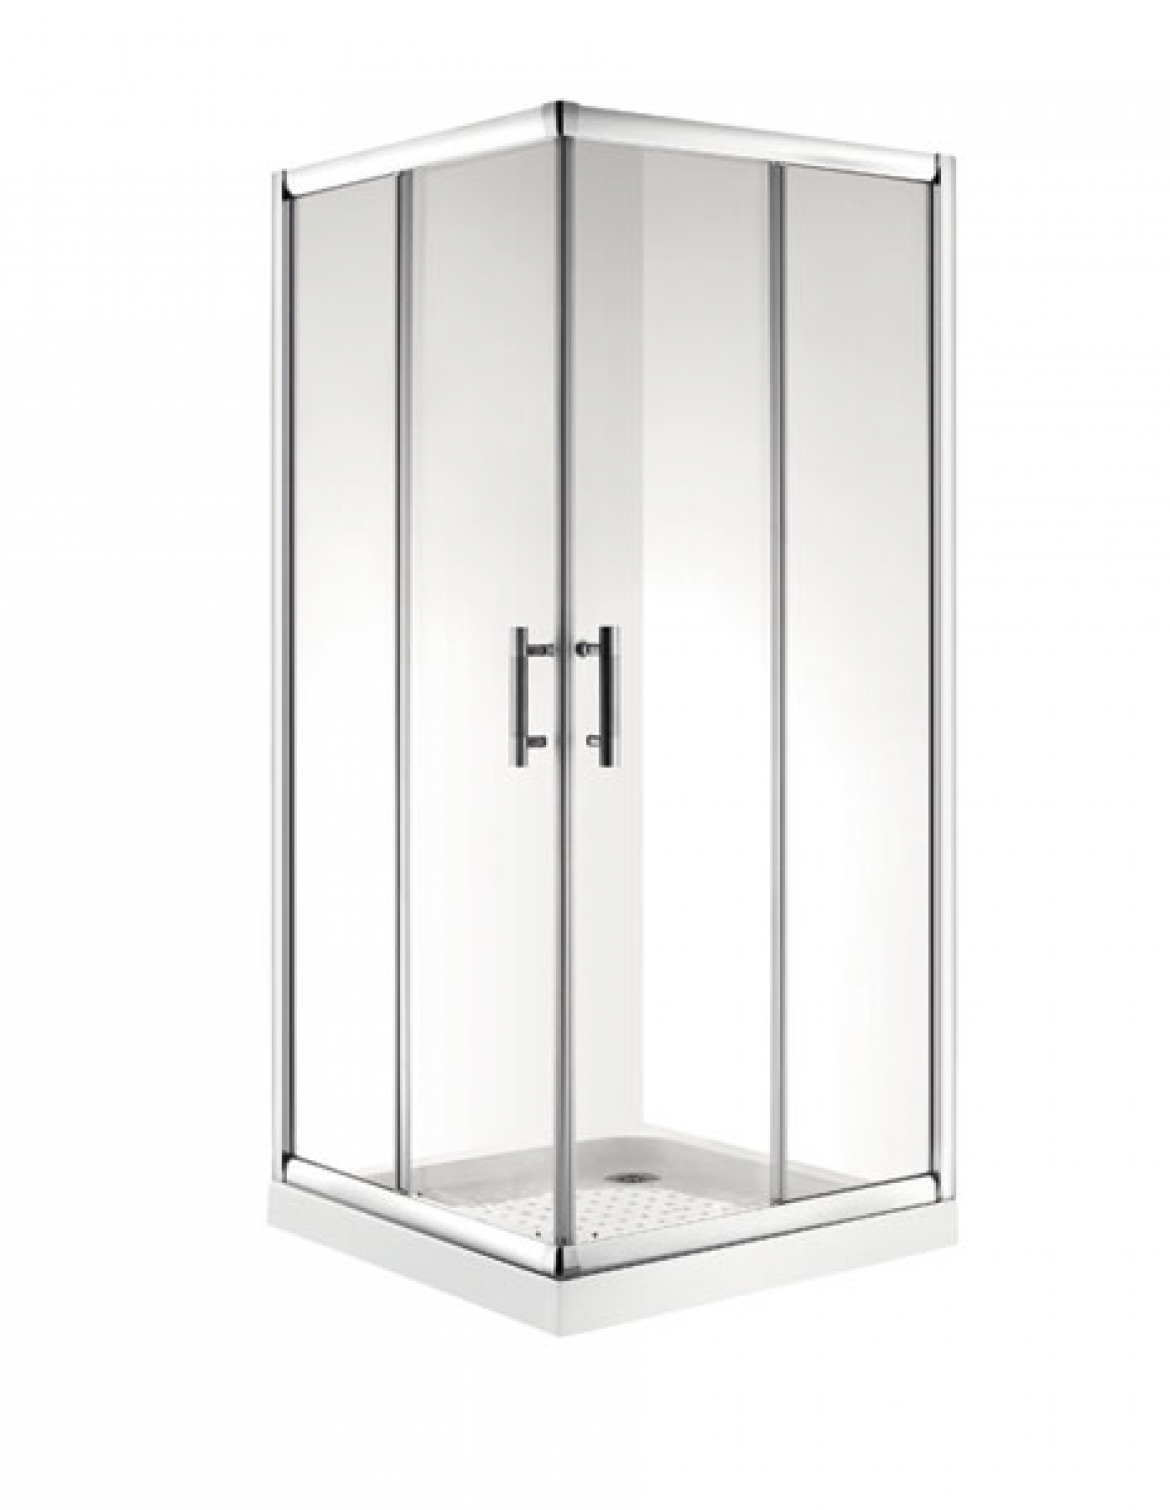 Double sliding door shower screen [8016] $300-$350